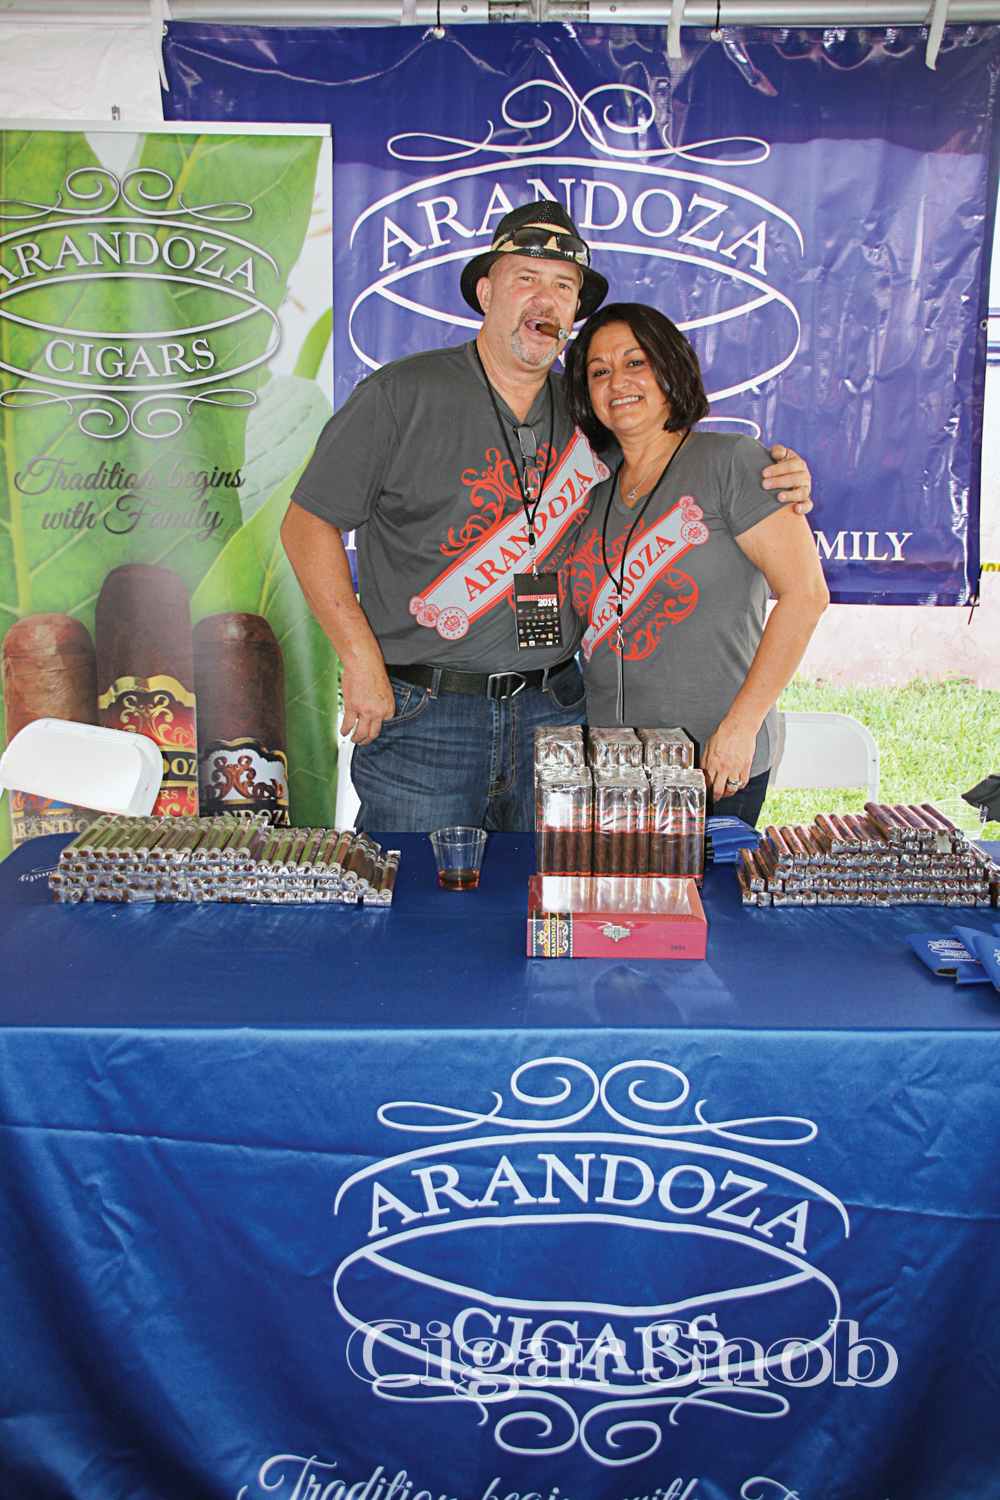 Robert and Pilar Arango of Arandoza Cigars